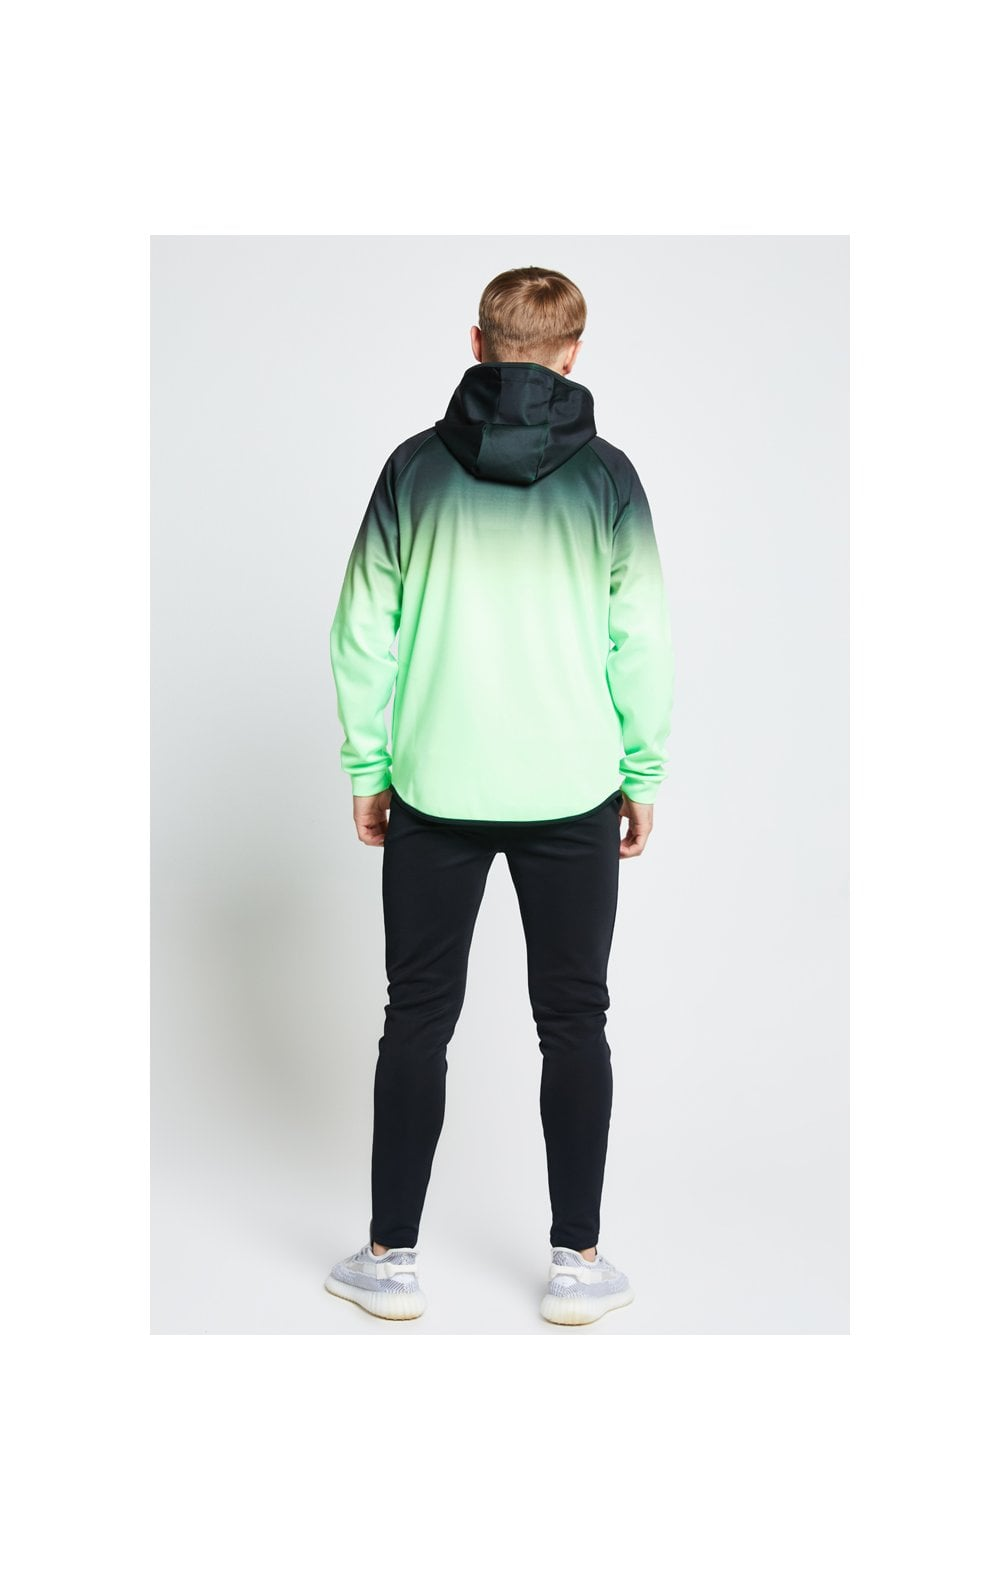 Load image into Gallery viewer, Illusive London Athlete Zip Through Hoodie - Black & Neon Green (4)